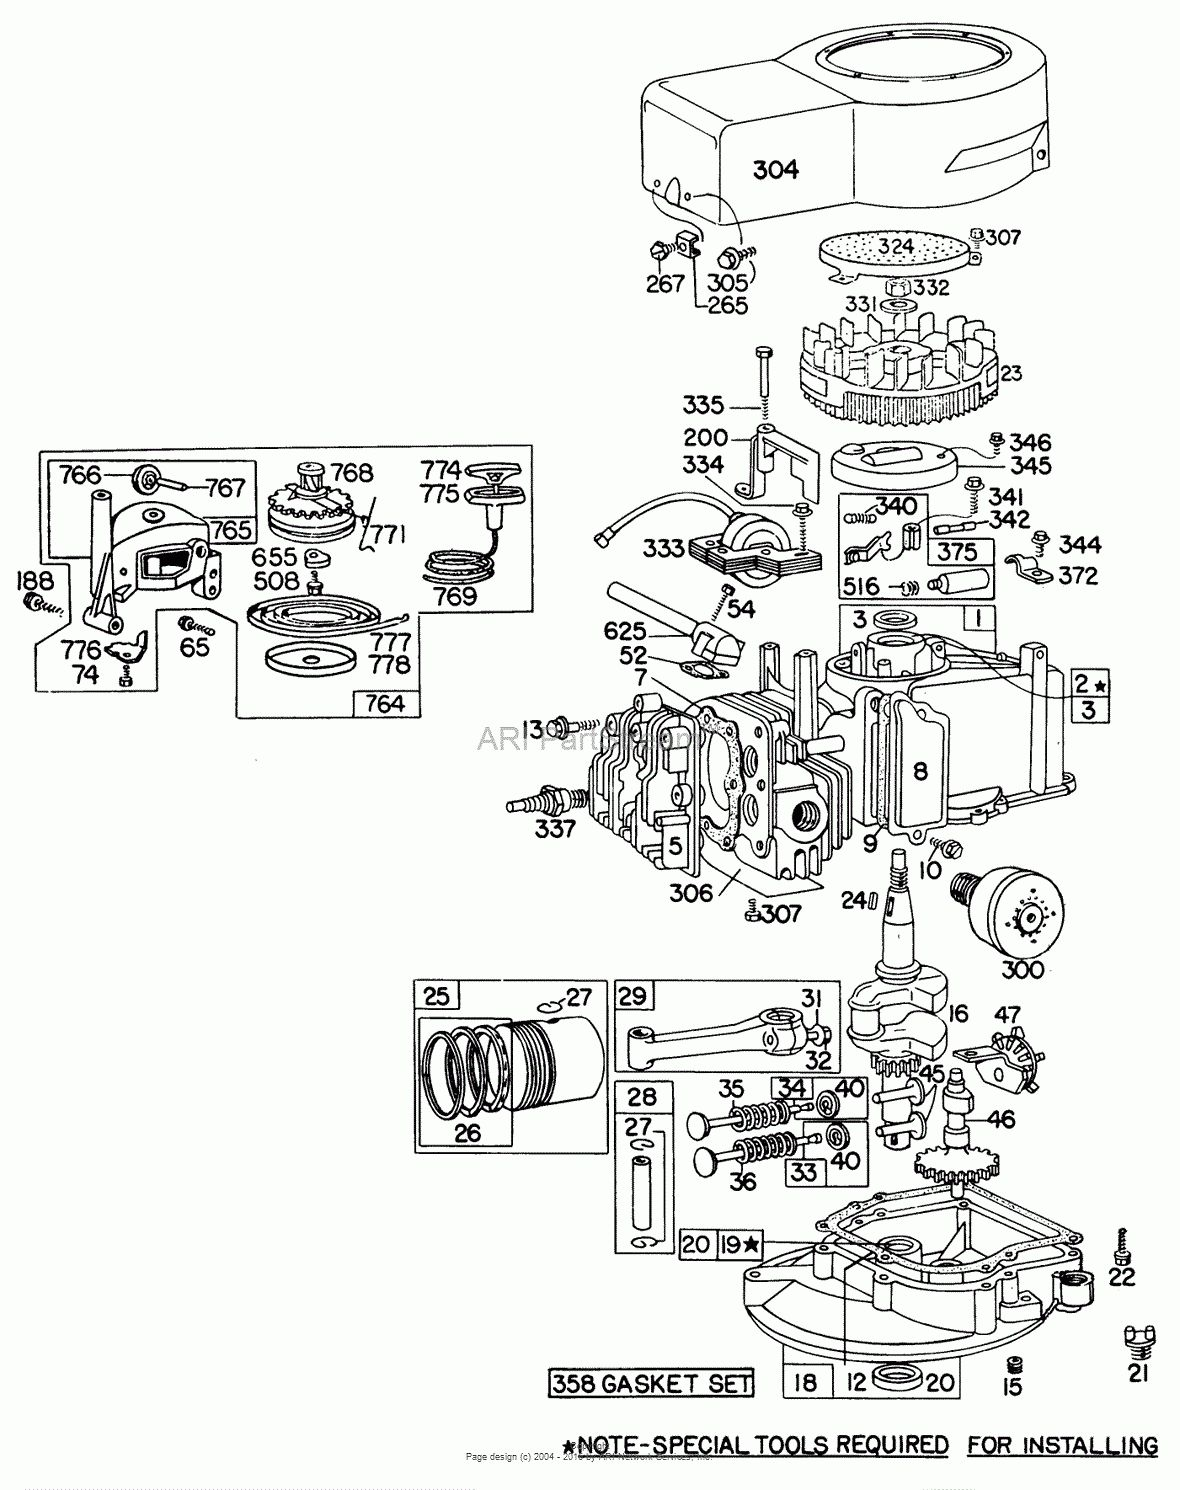 small resolution of diagram of briggs and stratton lawn mower engine wiring diagram blogbriggs stratton engine parts diagram briggs